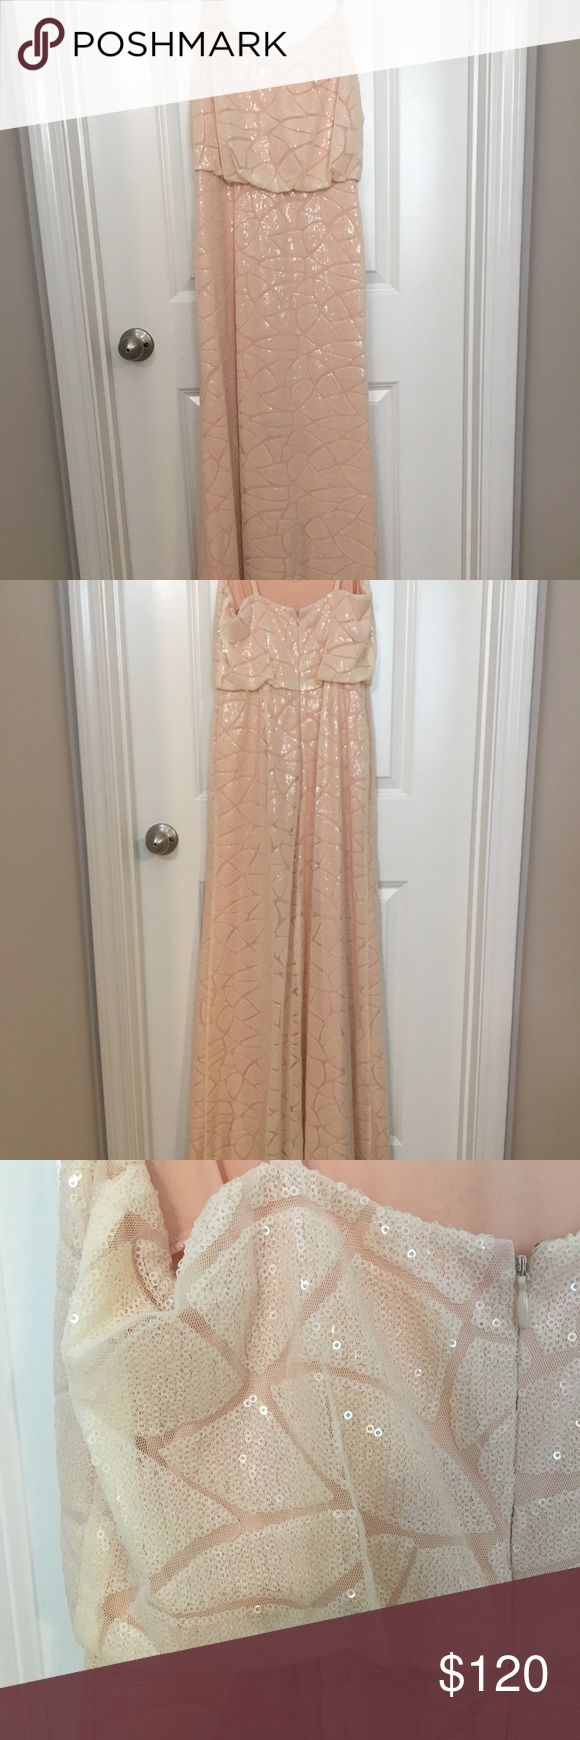 "Donna Morgan Dress, Style: Olivia, Color: Apricot Donna Morgan Collection bridesmaid dress in the Olivia style and the color Apricot worn once for a wedding. It has already been hemmed (I'm 5'5"" and wore 3.5"" heels). No other alterations have been done. Item is in great condition! Donna Morgan Dresses Wedding"